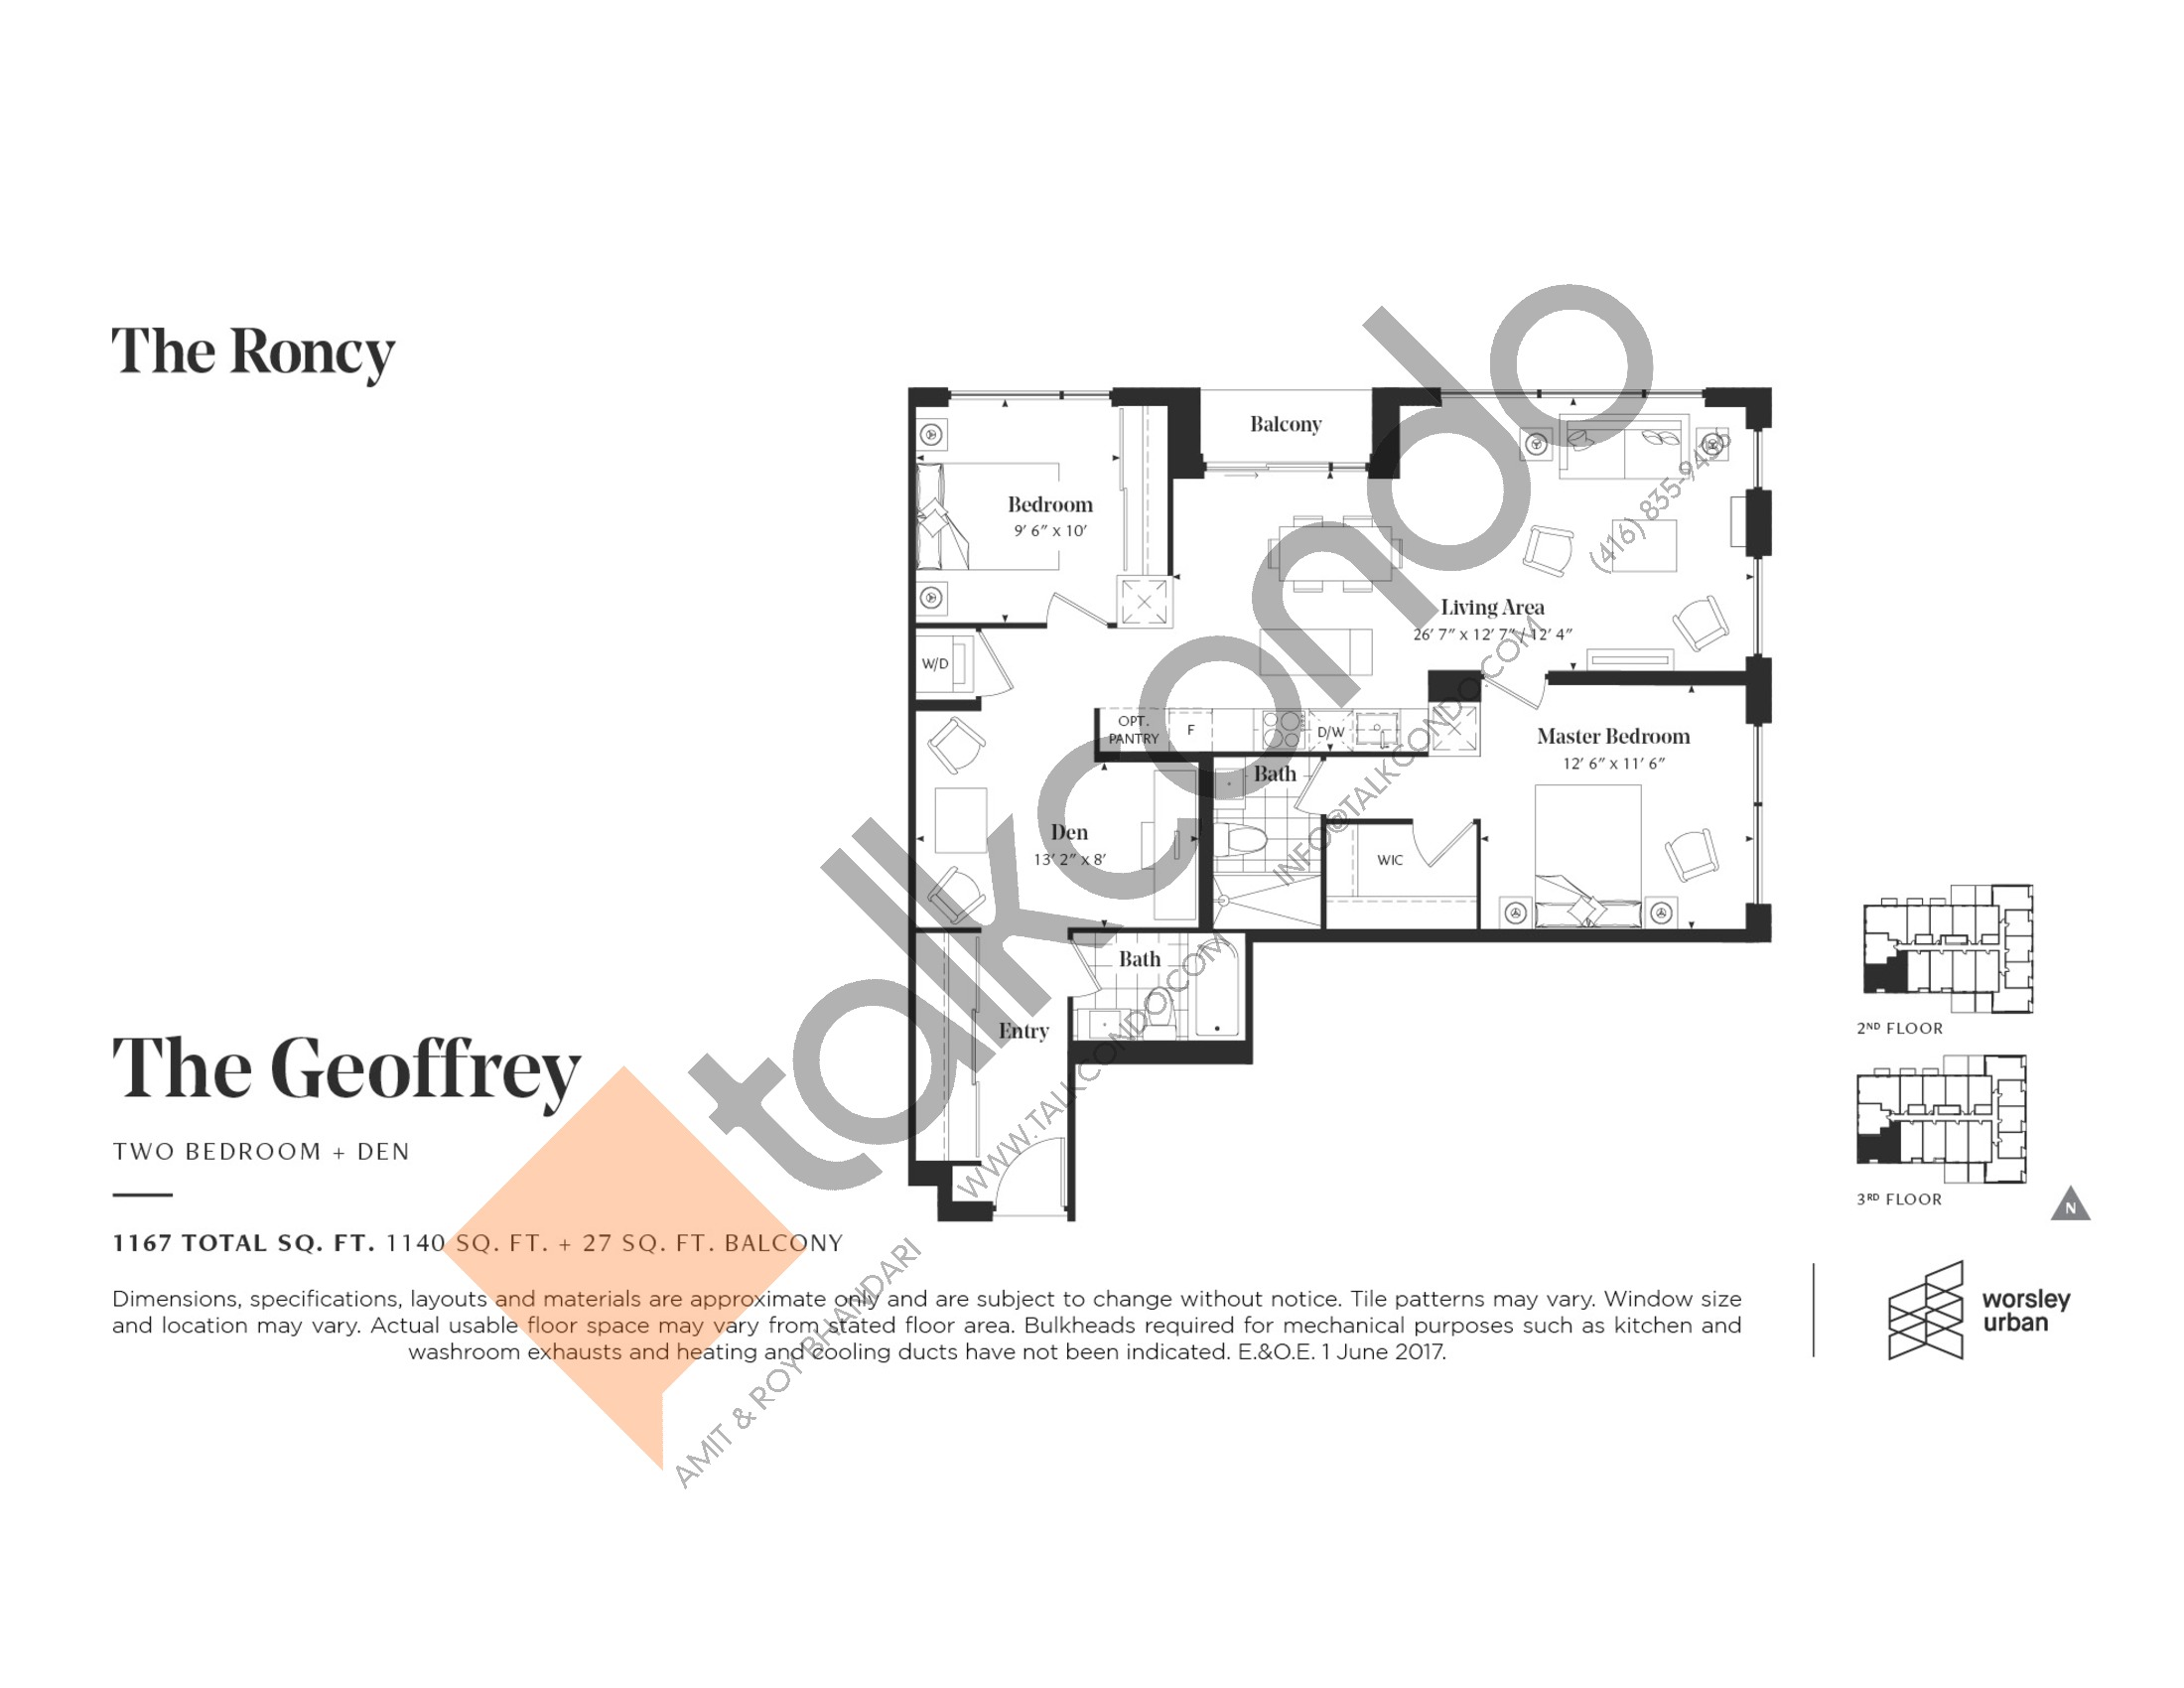 The Geoffrey Floor Plan at The Roncy Condos - 1140 sq.ft